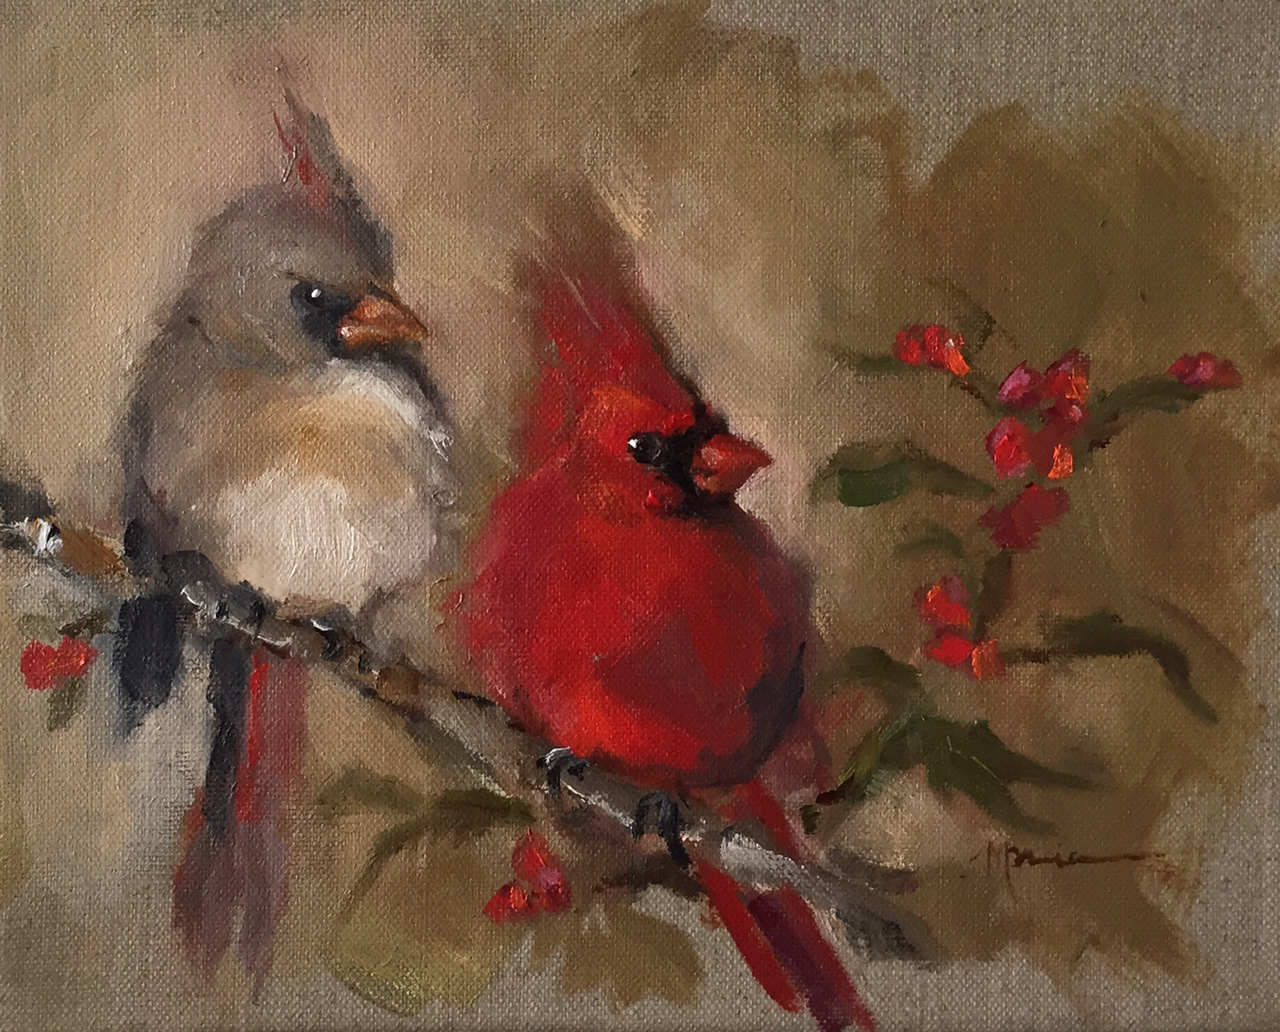 Painting by the lake 11012015 12012015 it is said that cardinals symbolize hope joy health rejuvenation and celebration there are also those who believe that when a cardinal appears then an buycottarizona